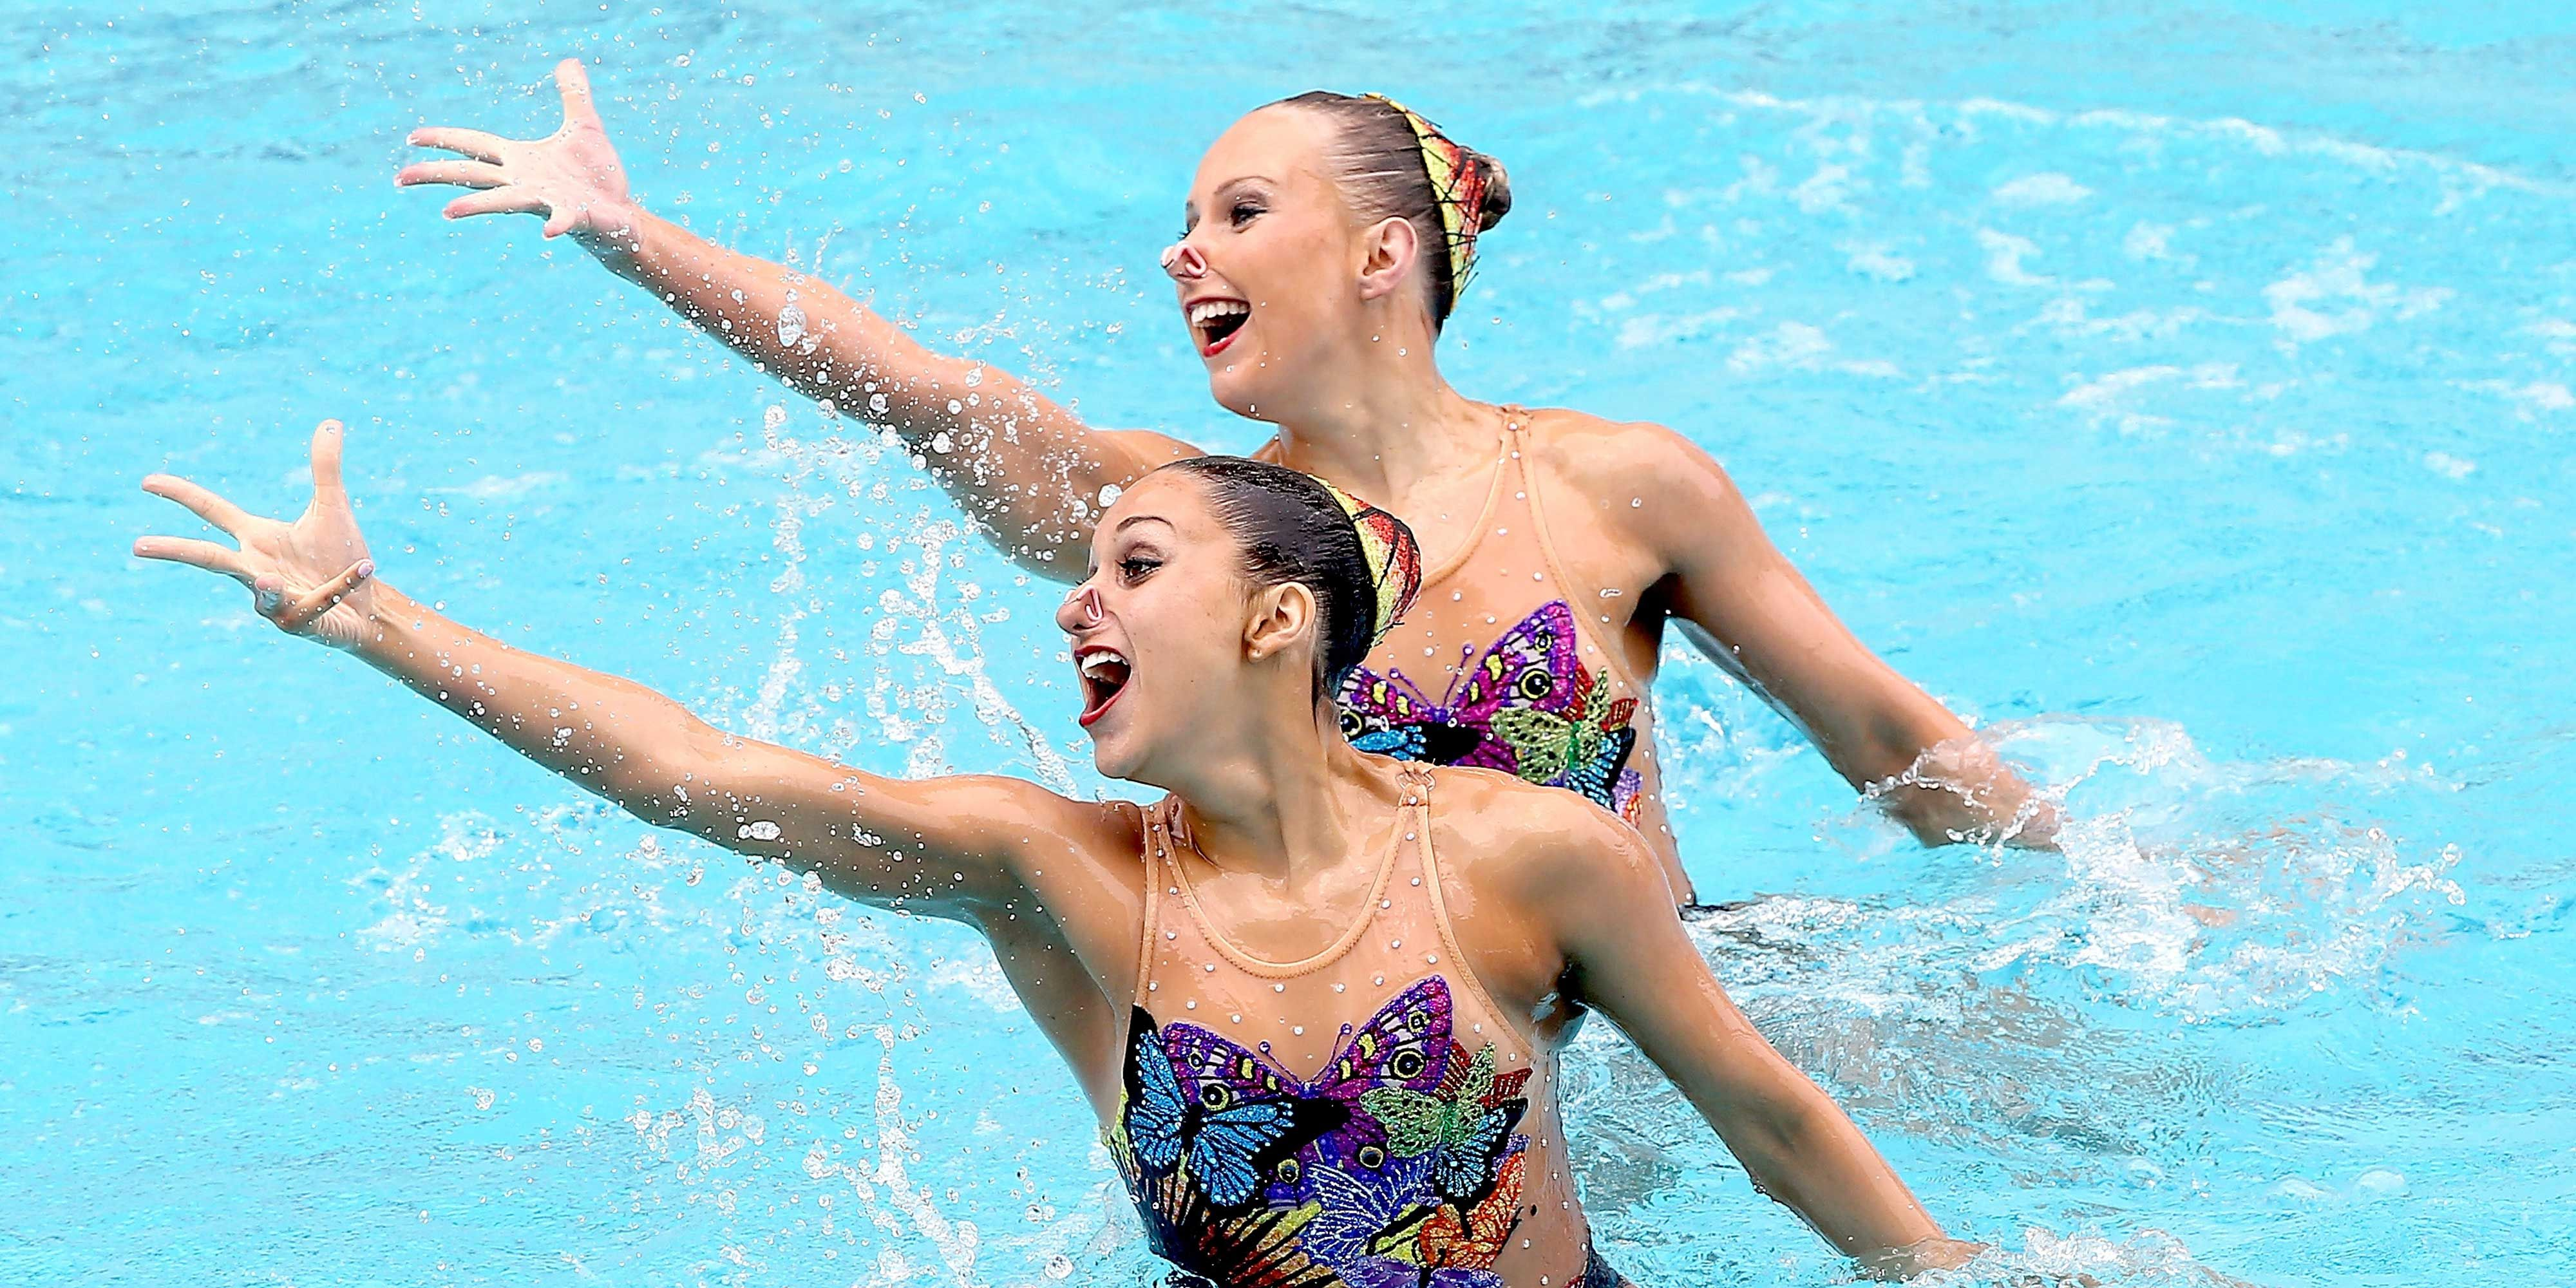 16 Facts About Team Usa Synchronized Swimmers Mariya Koroleva